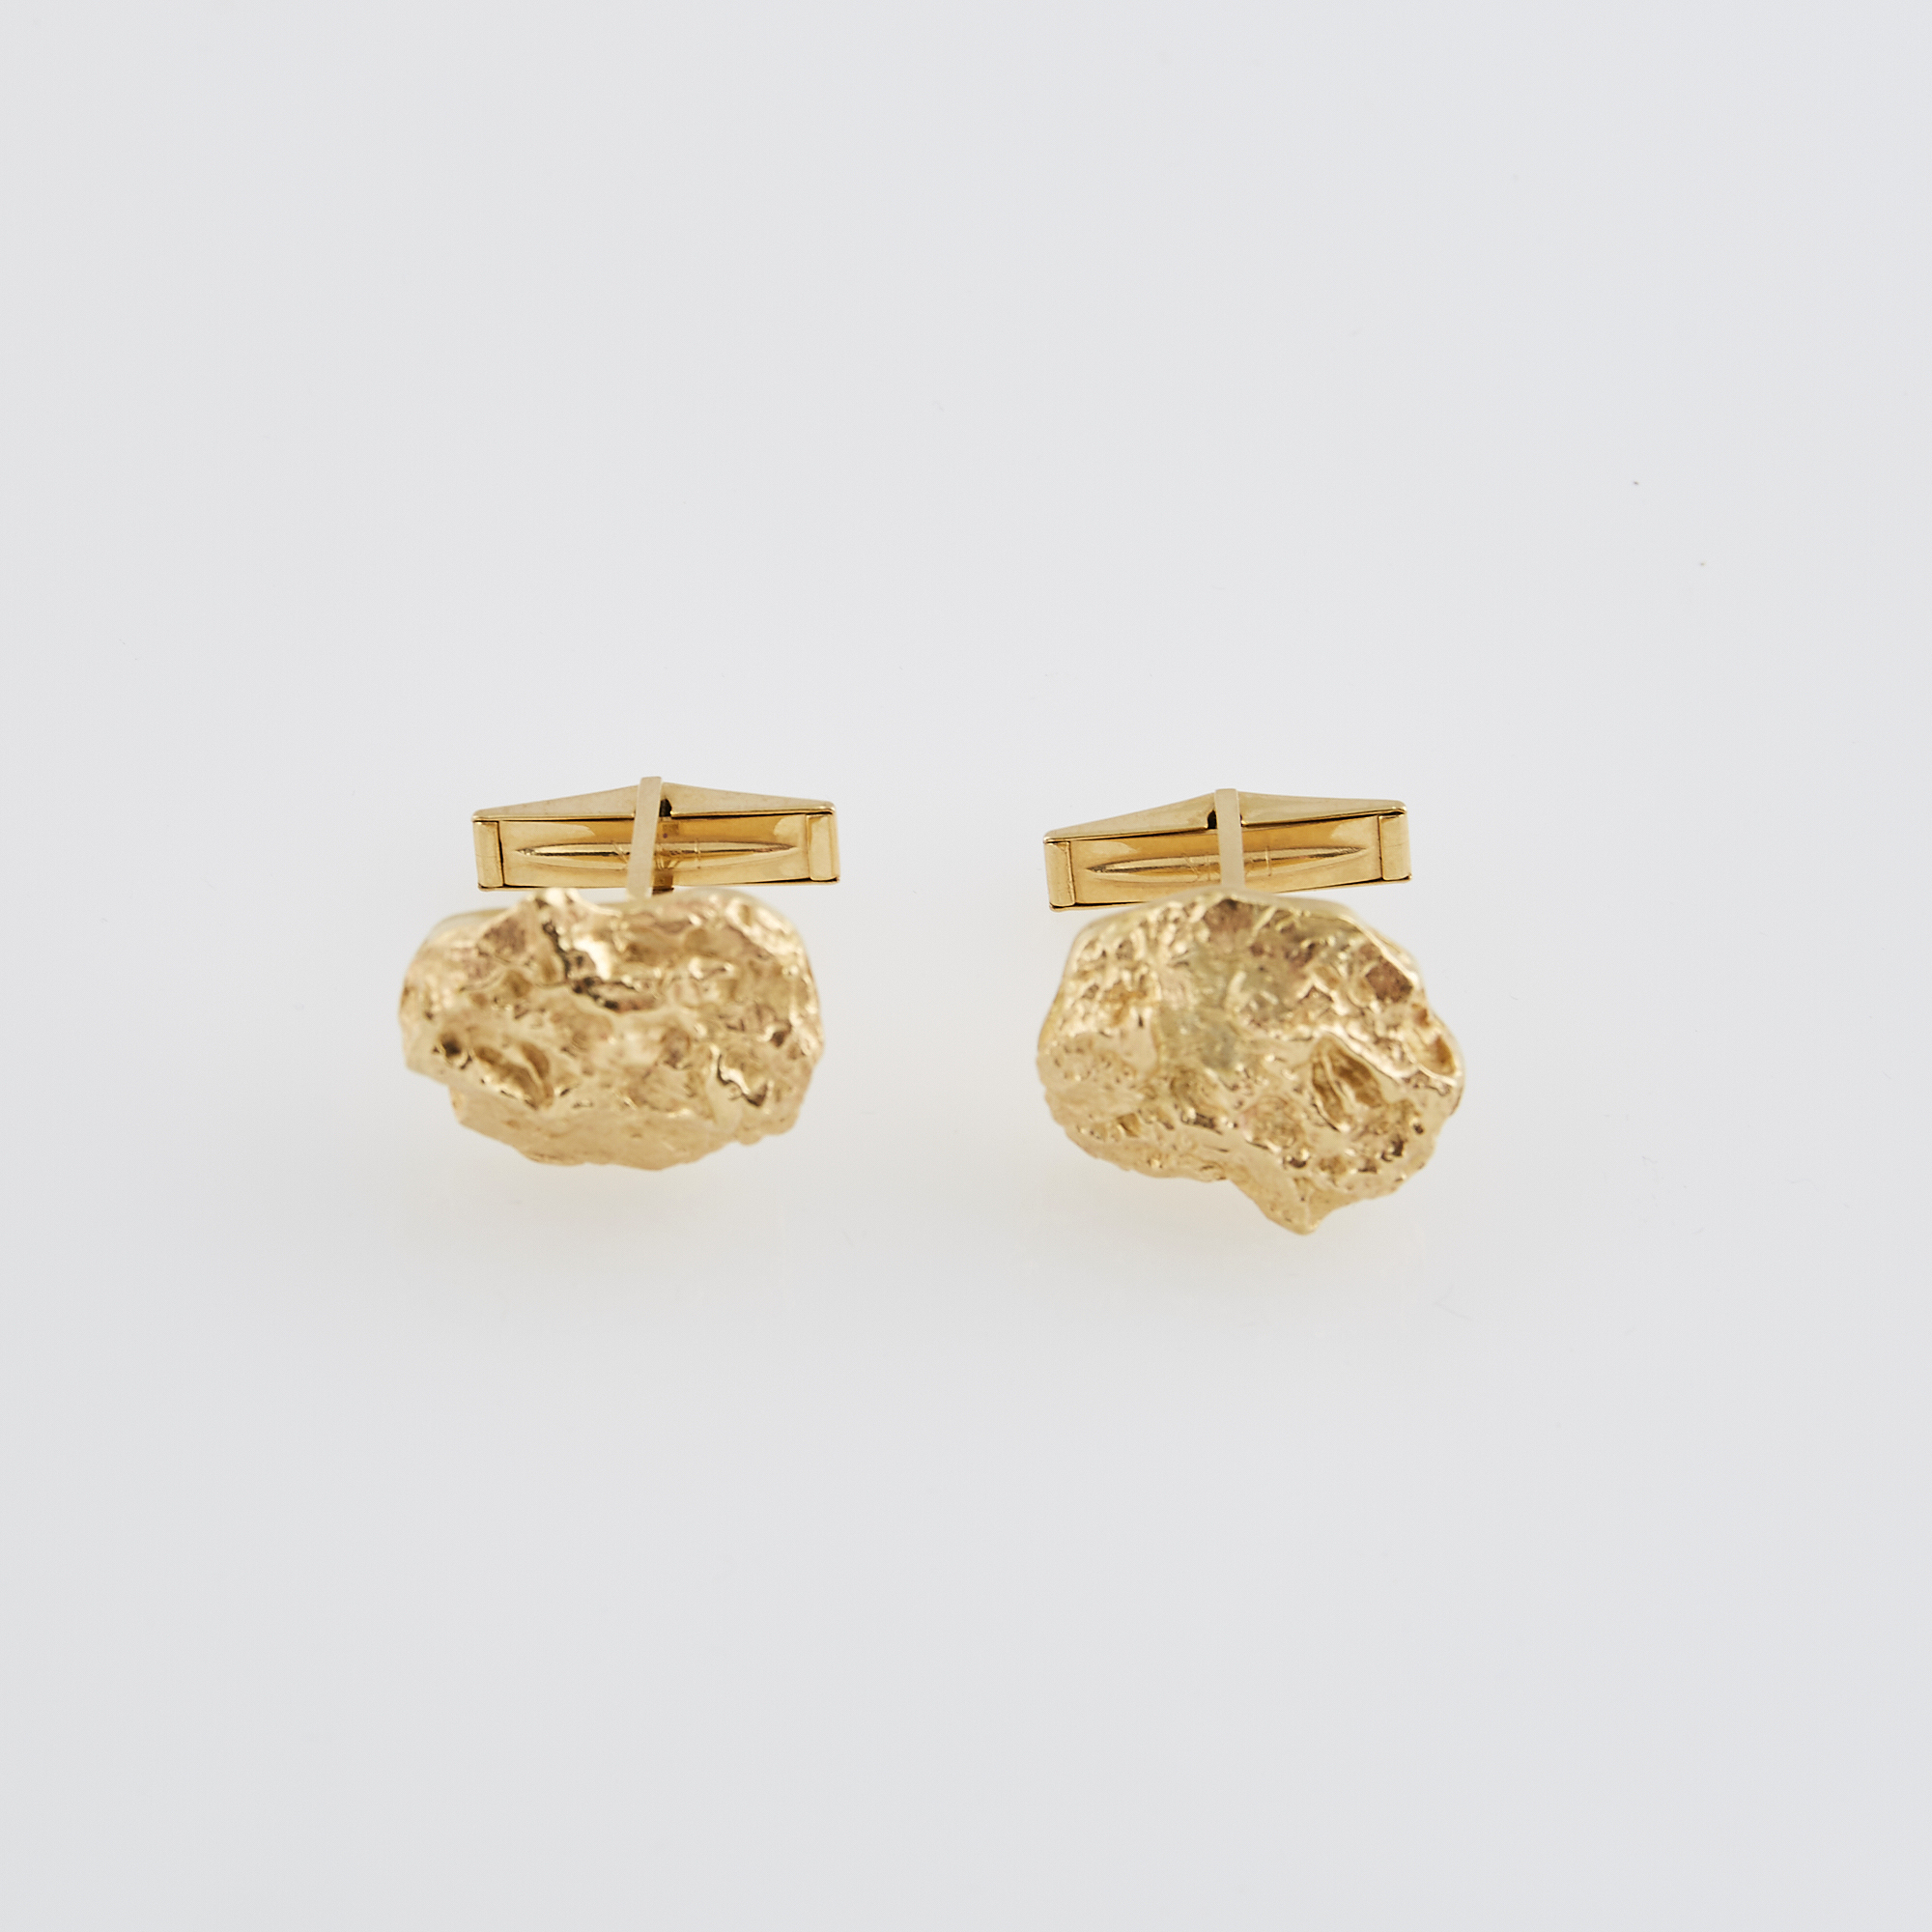 Lot image - Two Gold Cuff Links, 14K 9 dwt.